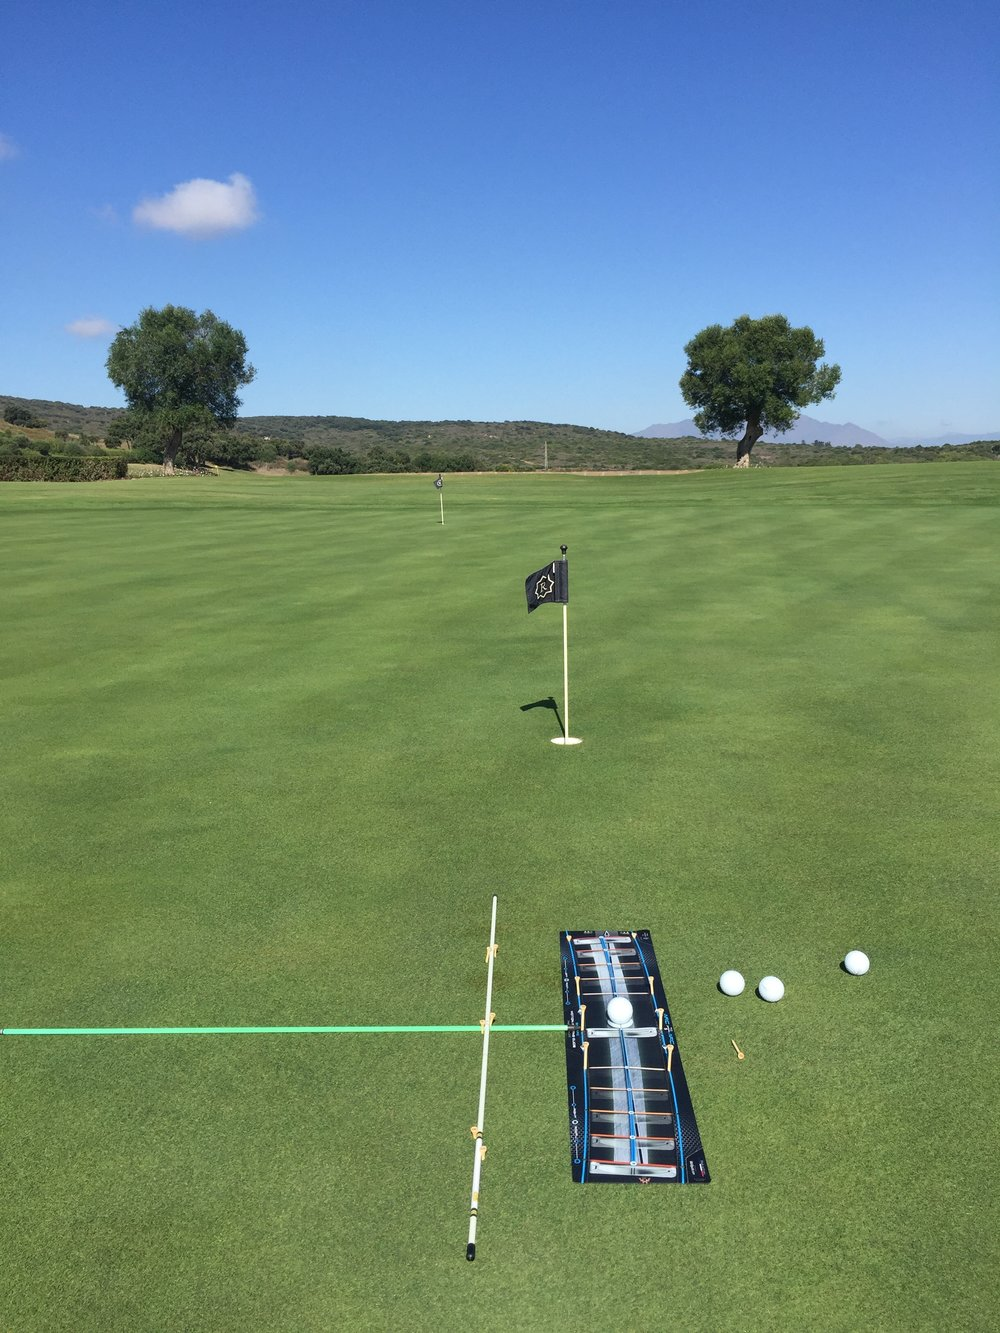 For me it is crucial to practice my stroke with a perfect set up. That is why I always set up my alignment sticks to the same distance from the ball and same stance width on my feet. To acknowledge what worked best for my stance (distance from the ball and stance width, I had my coach Jorge Parada ( @jorgeparadagolf ) test me of it. If interested I will ask him details and maybe write a blog about it.